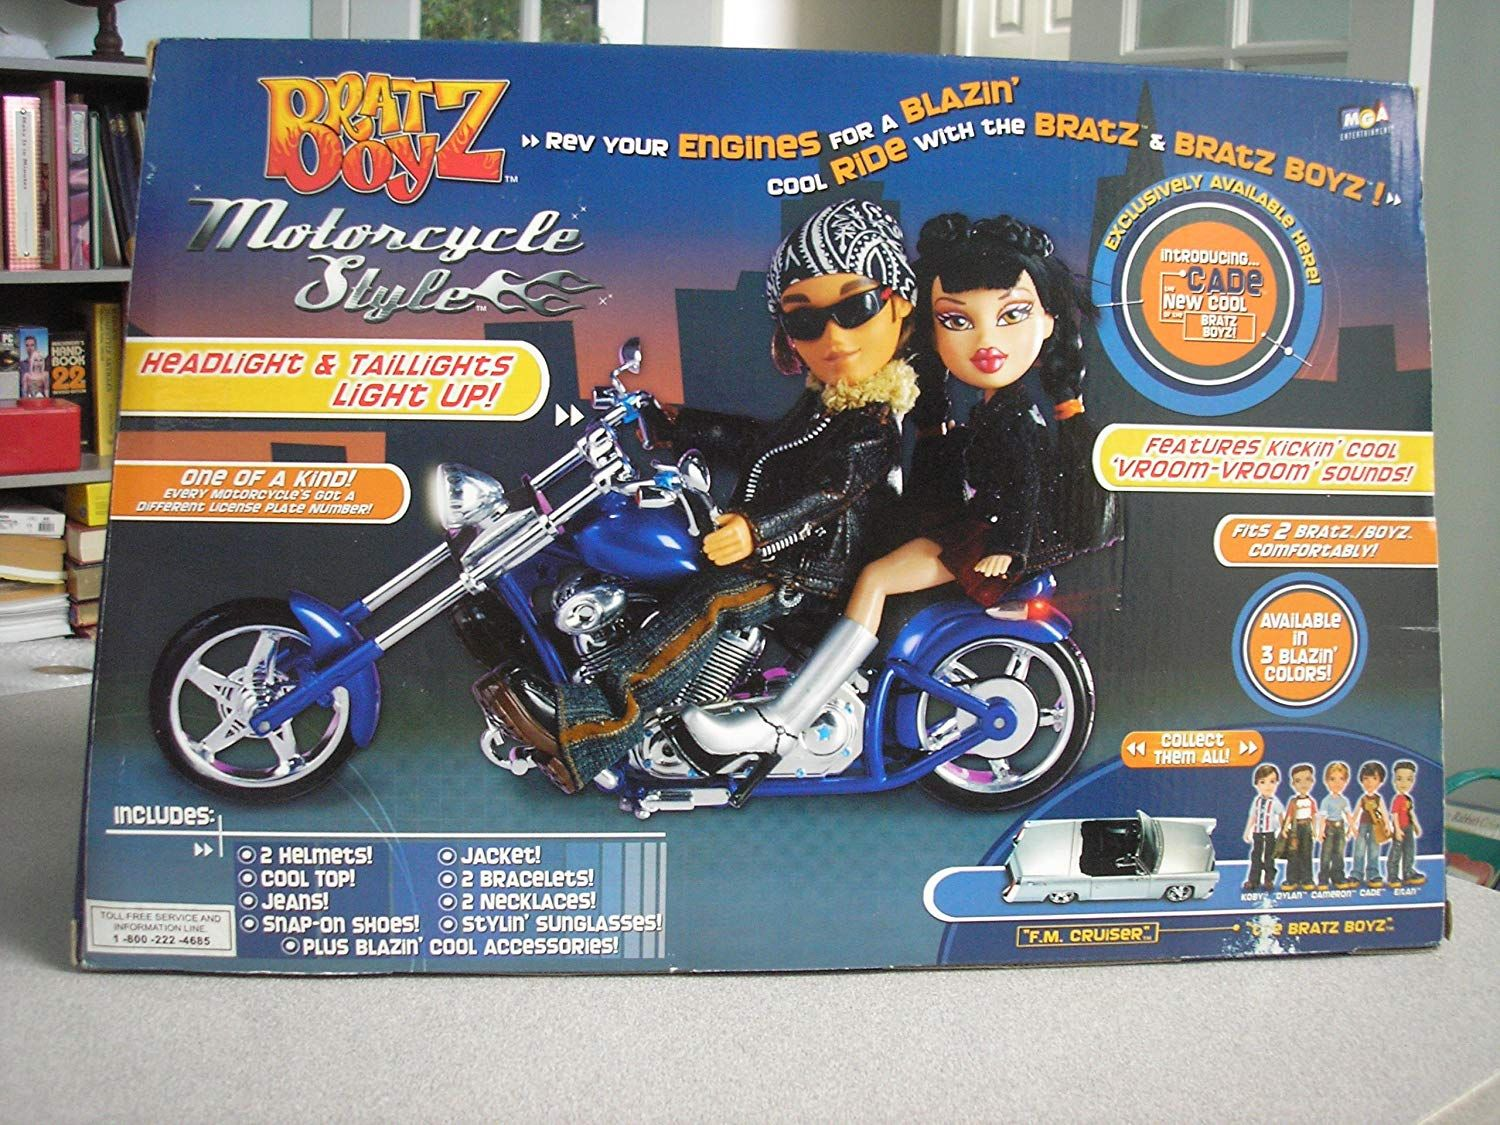 Bratz Boyz Motorcycle Style And Cade Doll Monster High Boys Toys For Boys Cool Fits